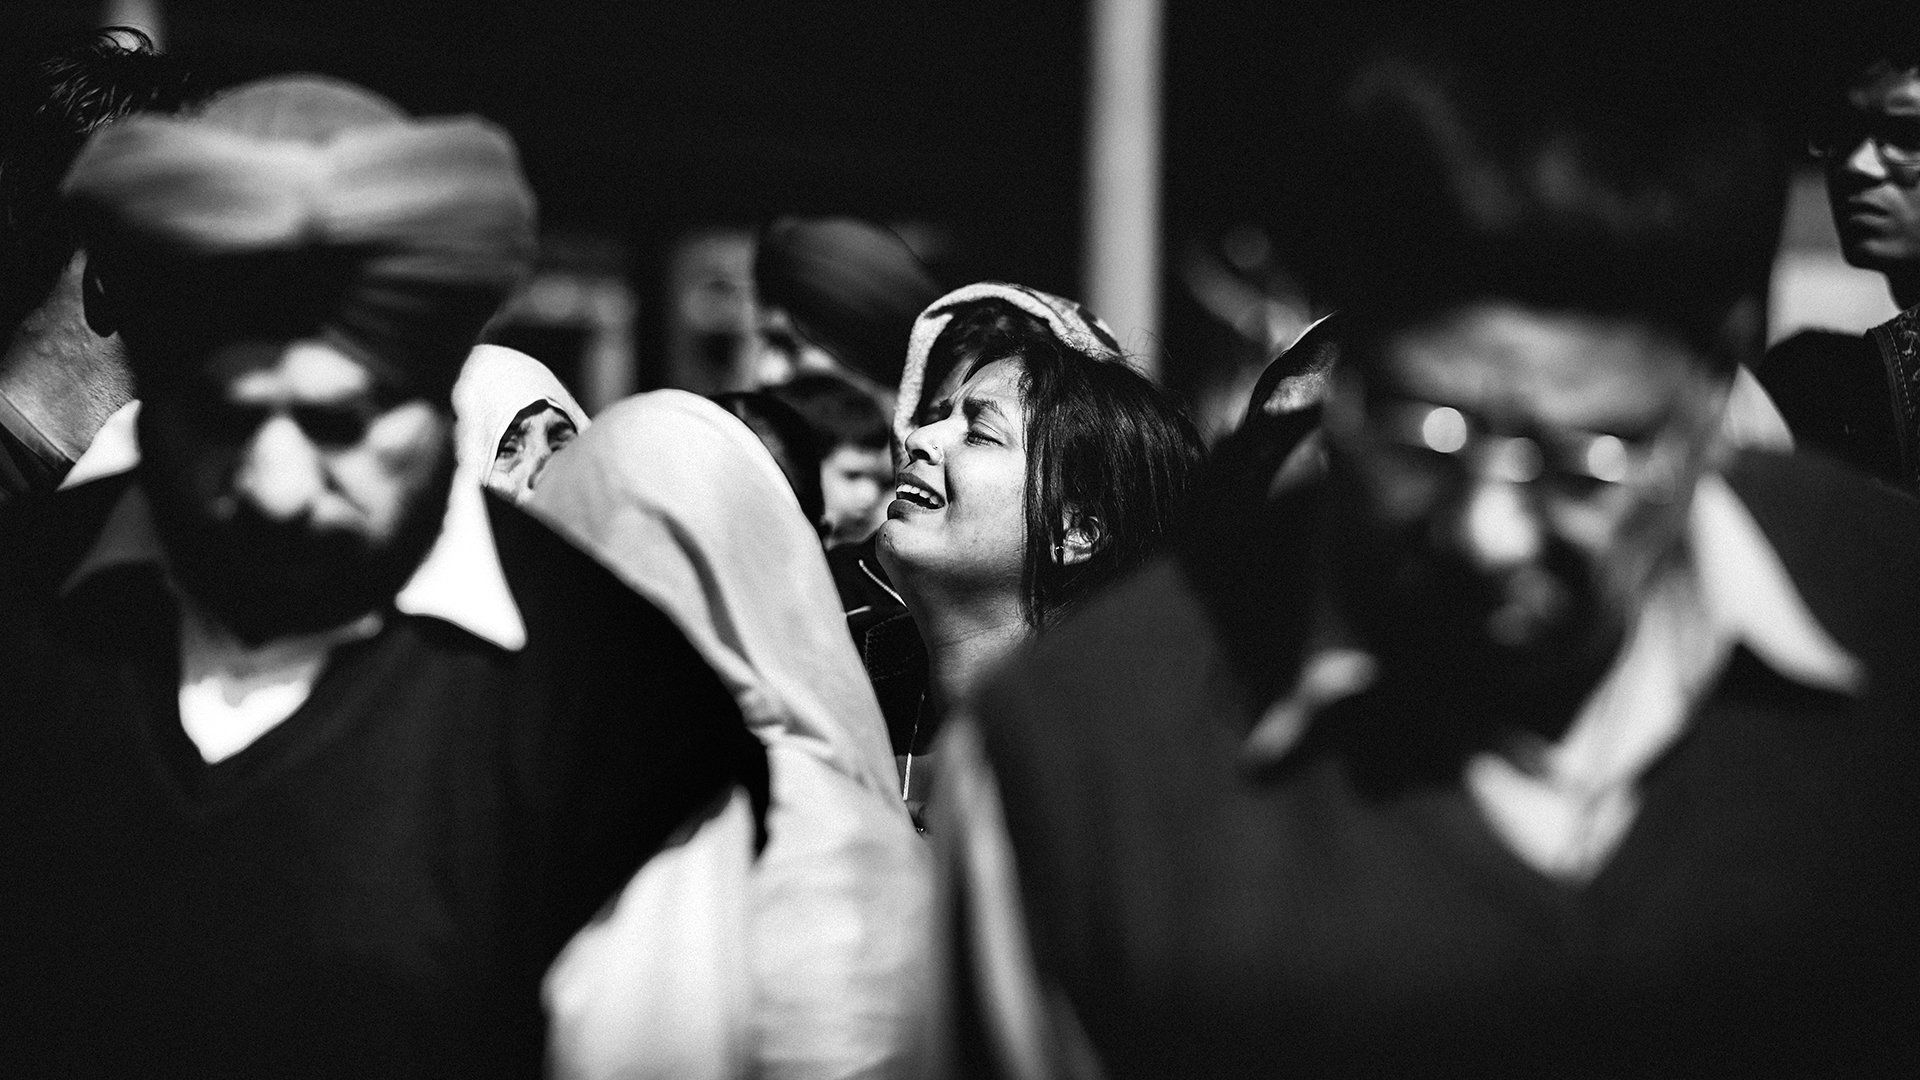 Woman crying in a crowd